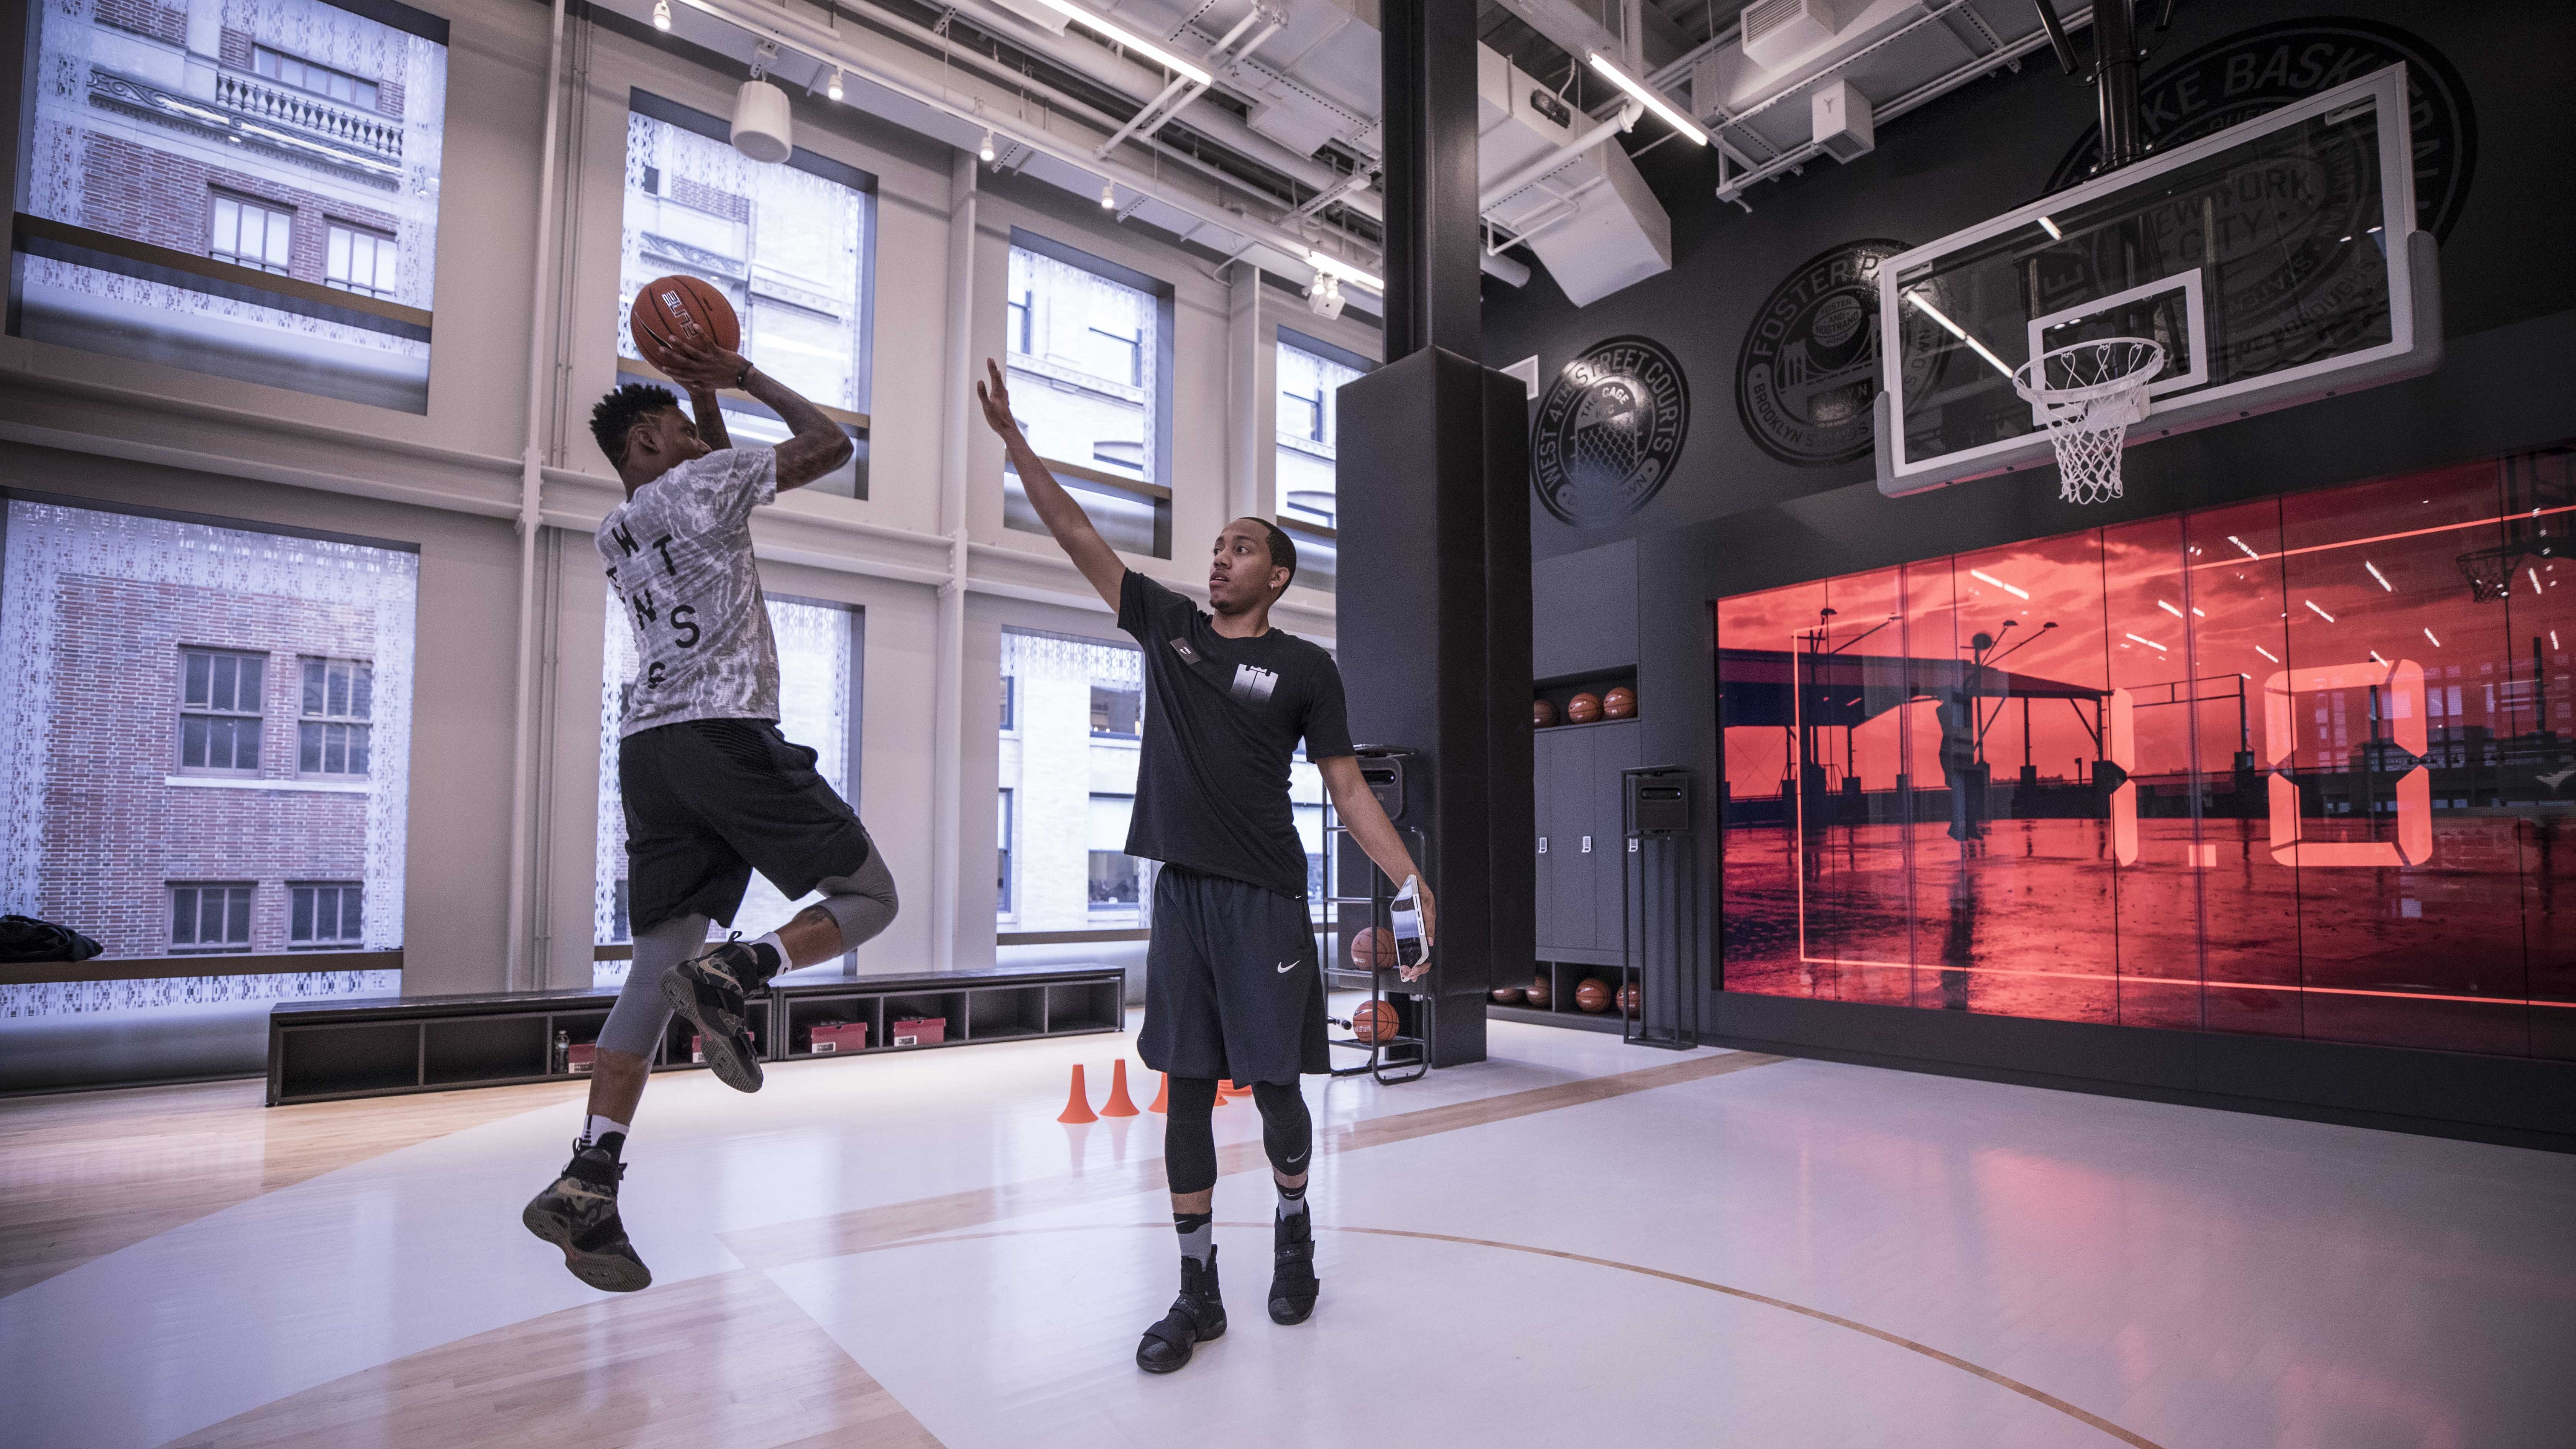 The Basketball Trial Area In Nikes New Soho York Store